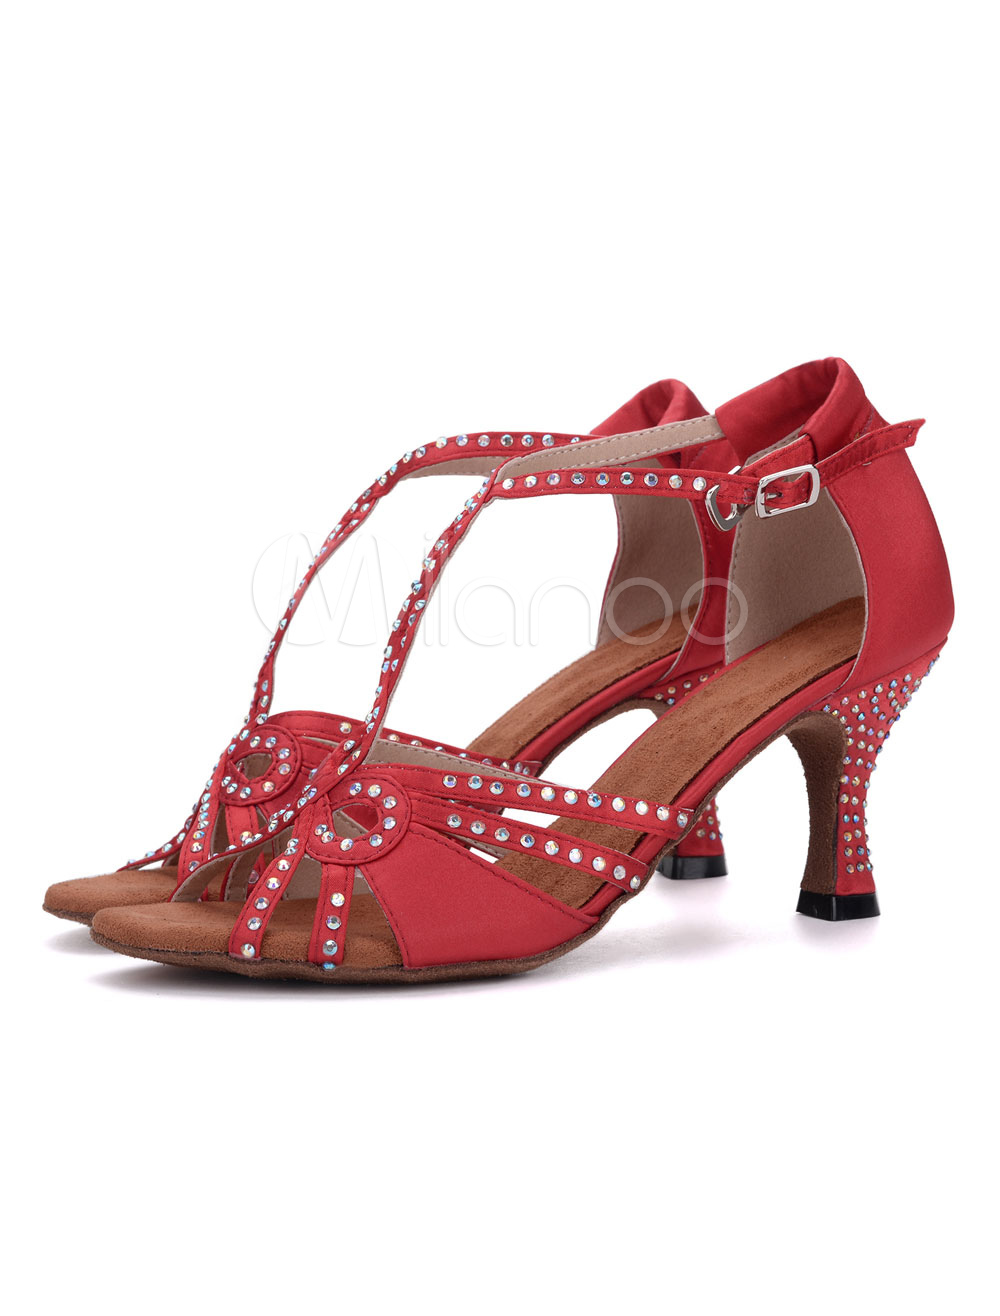 Buy Satin Dance Shoes Women Ballroom Shoes Peep Toe T Type Rhinestones Ankle Strap Dancing Shoes for $29.69 in Milanoo store